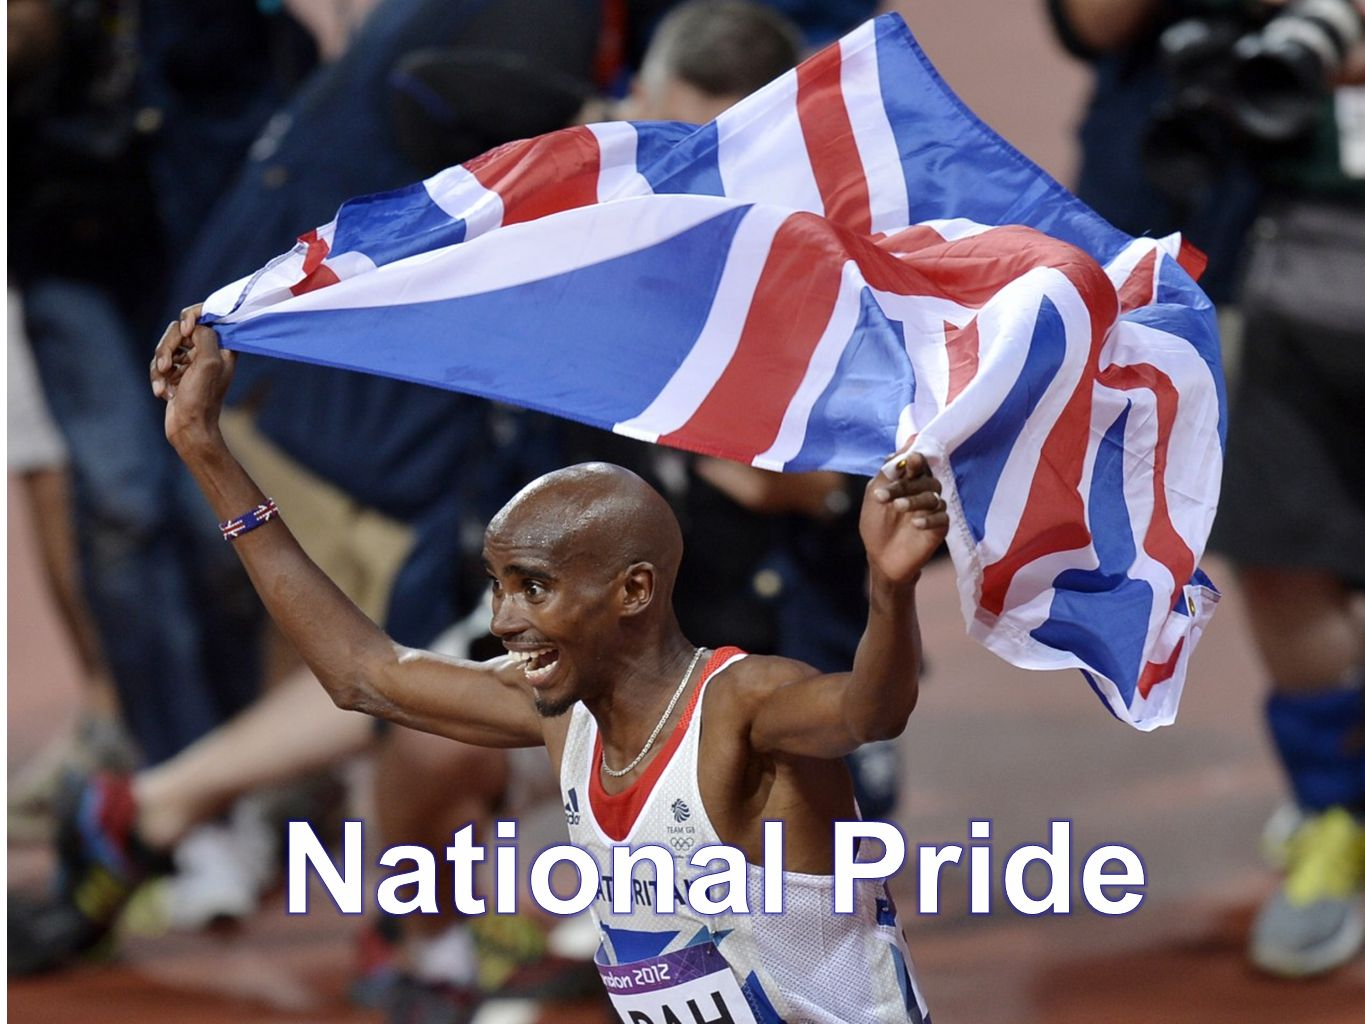 Cause 3 National Pride